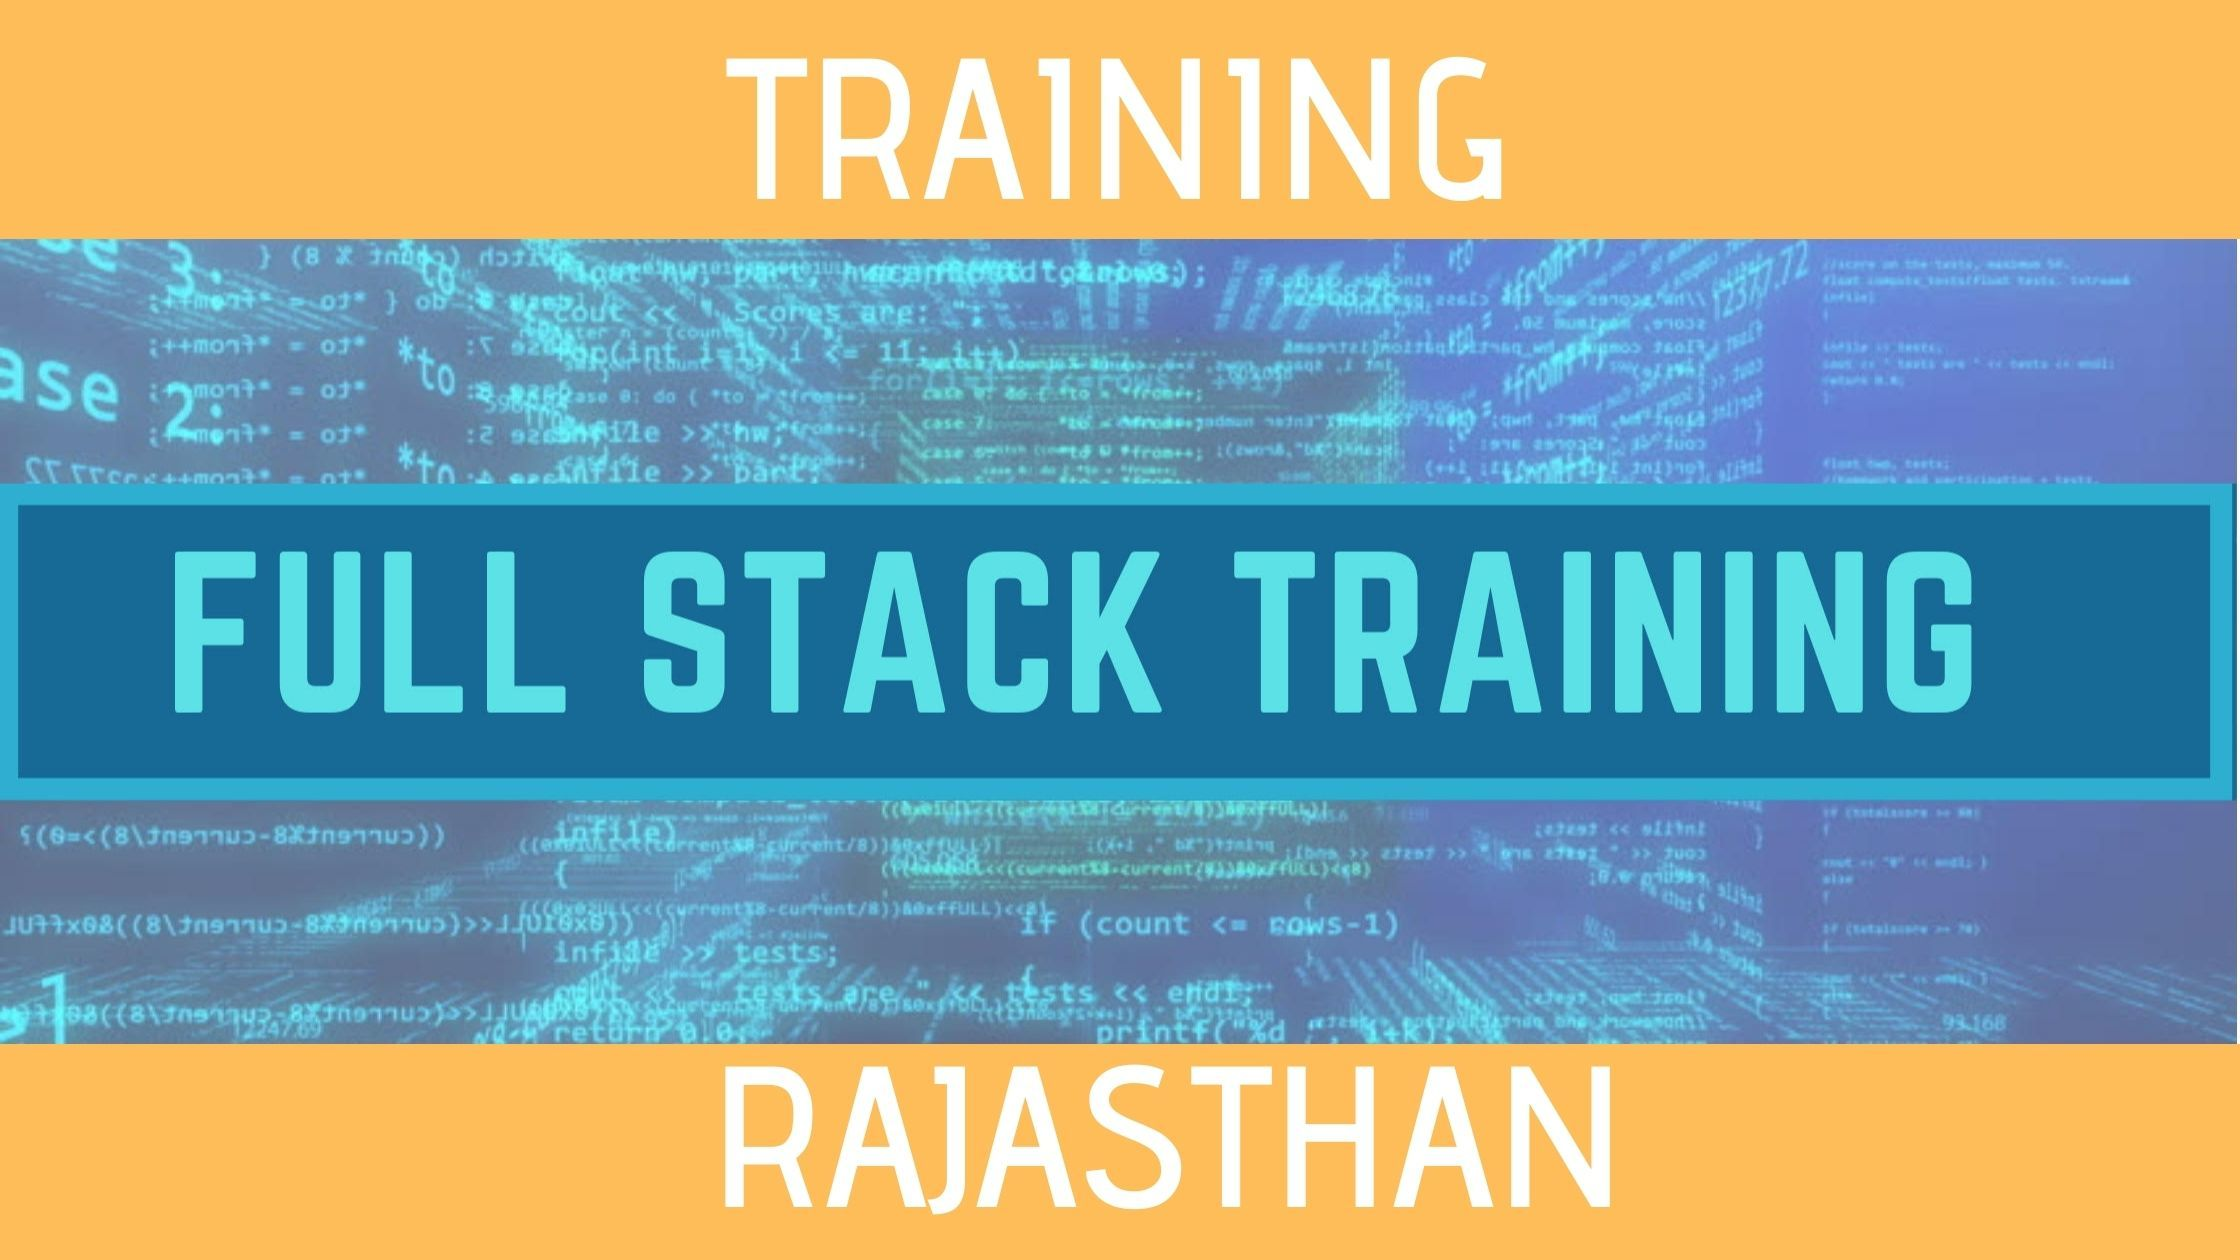 full_stack_training_in_rajasthan background.jpeg